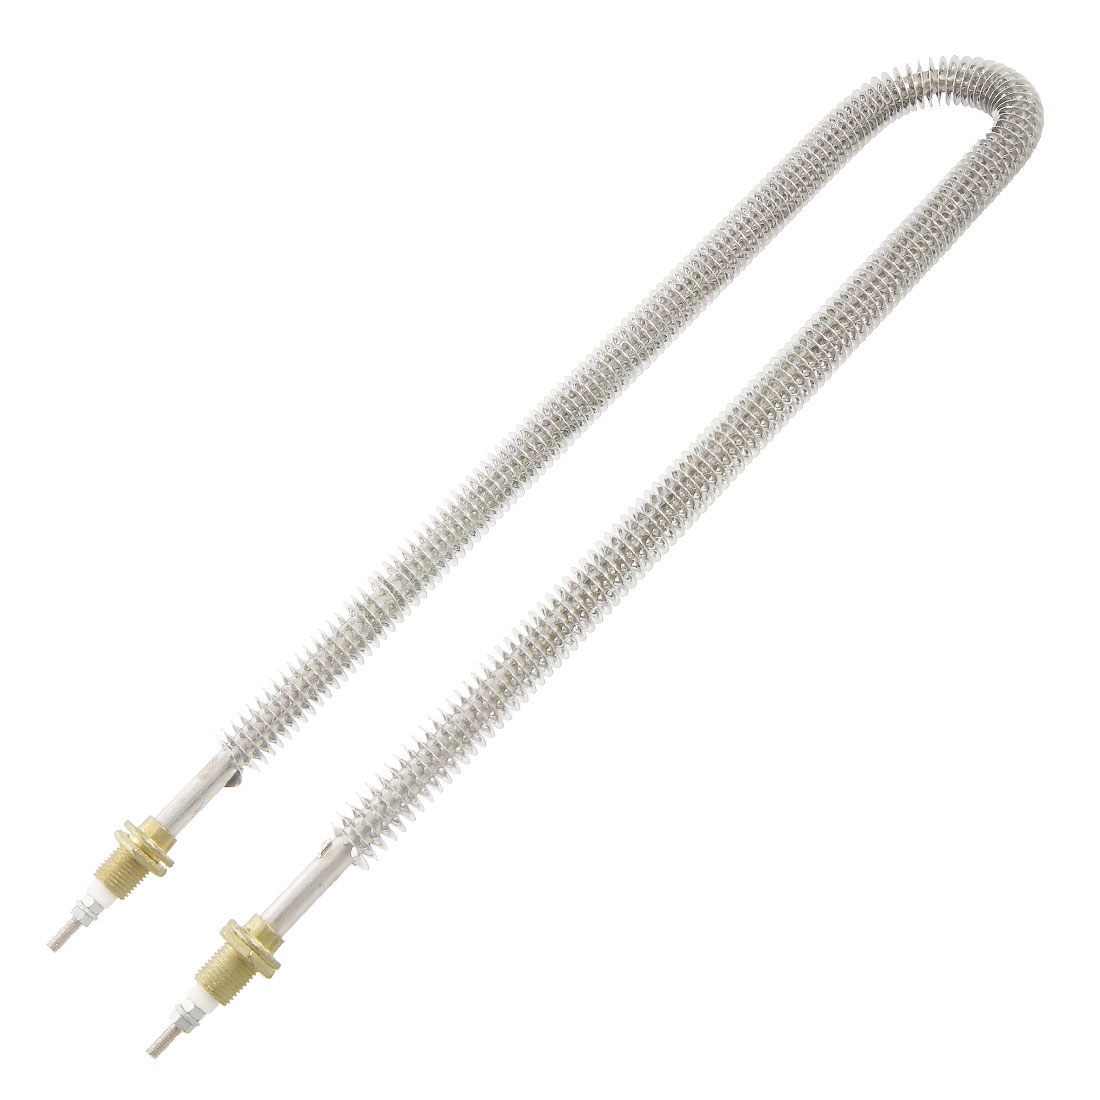 Stainless Steel U Type Electric 15.5mm Threaded Heating Element 1500W 220V AC